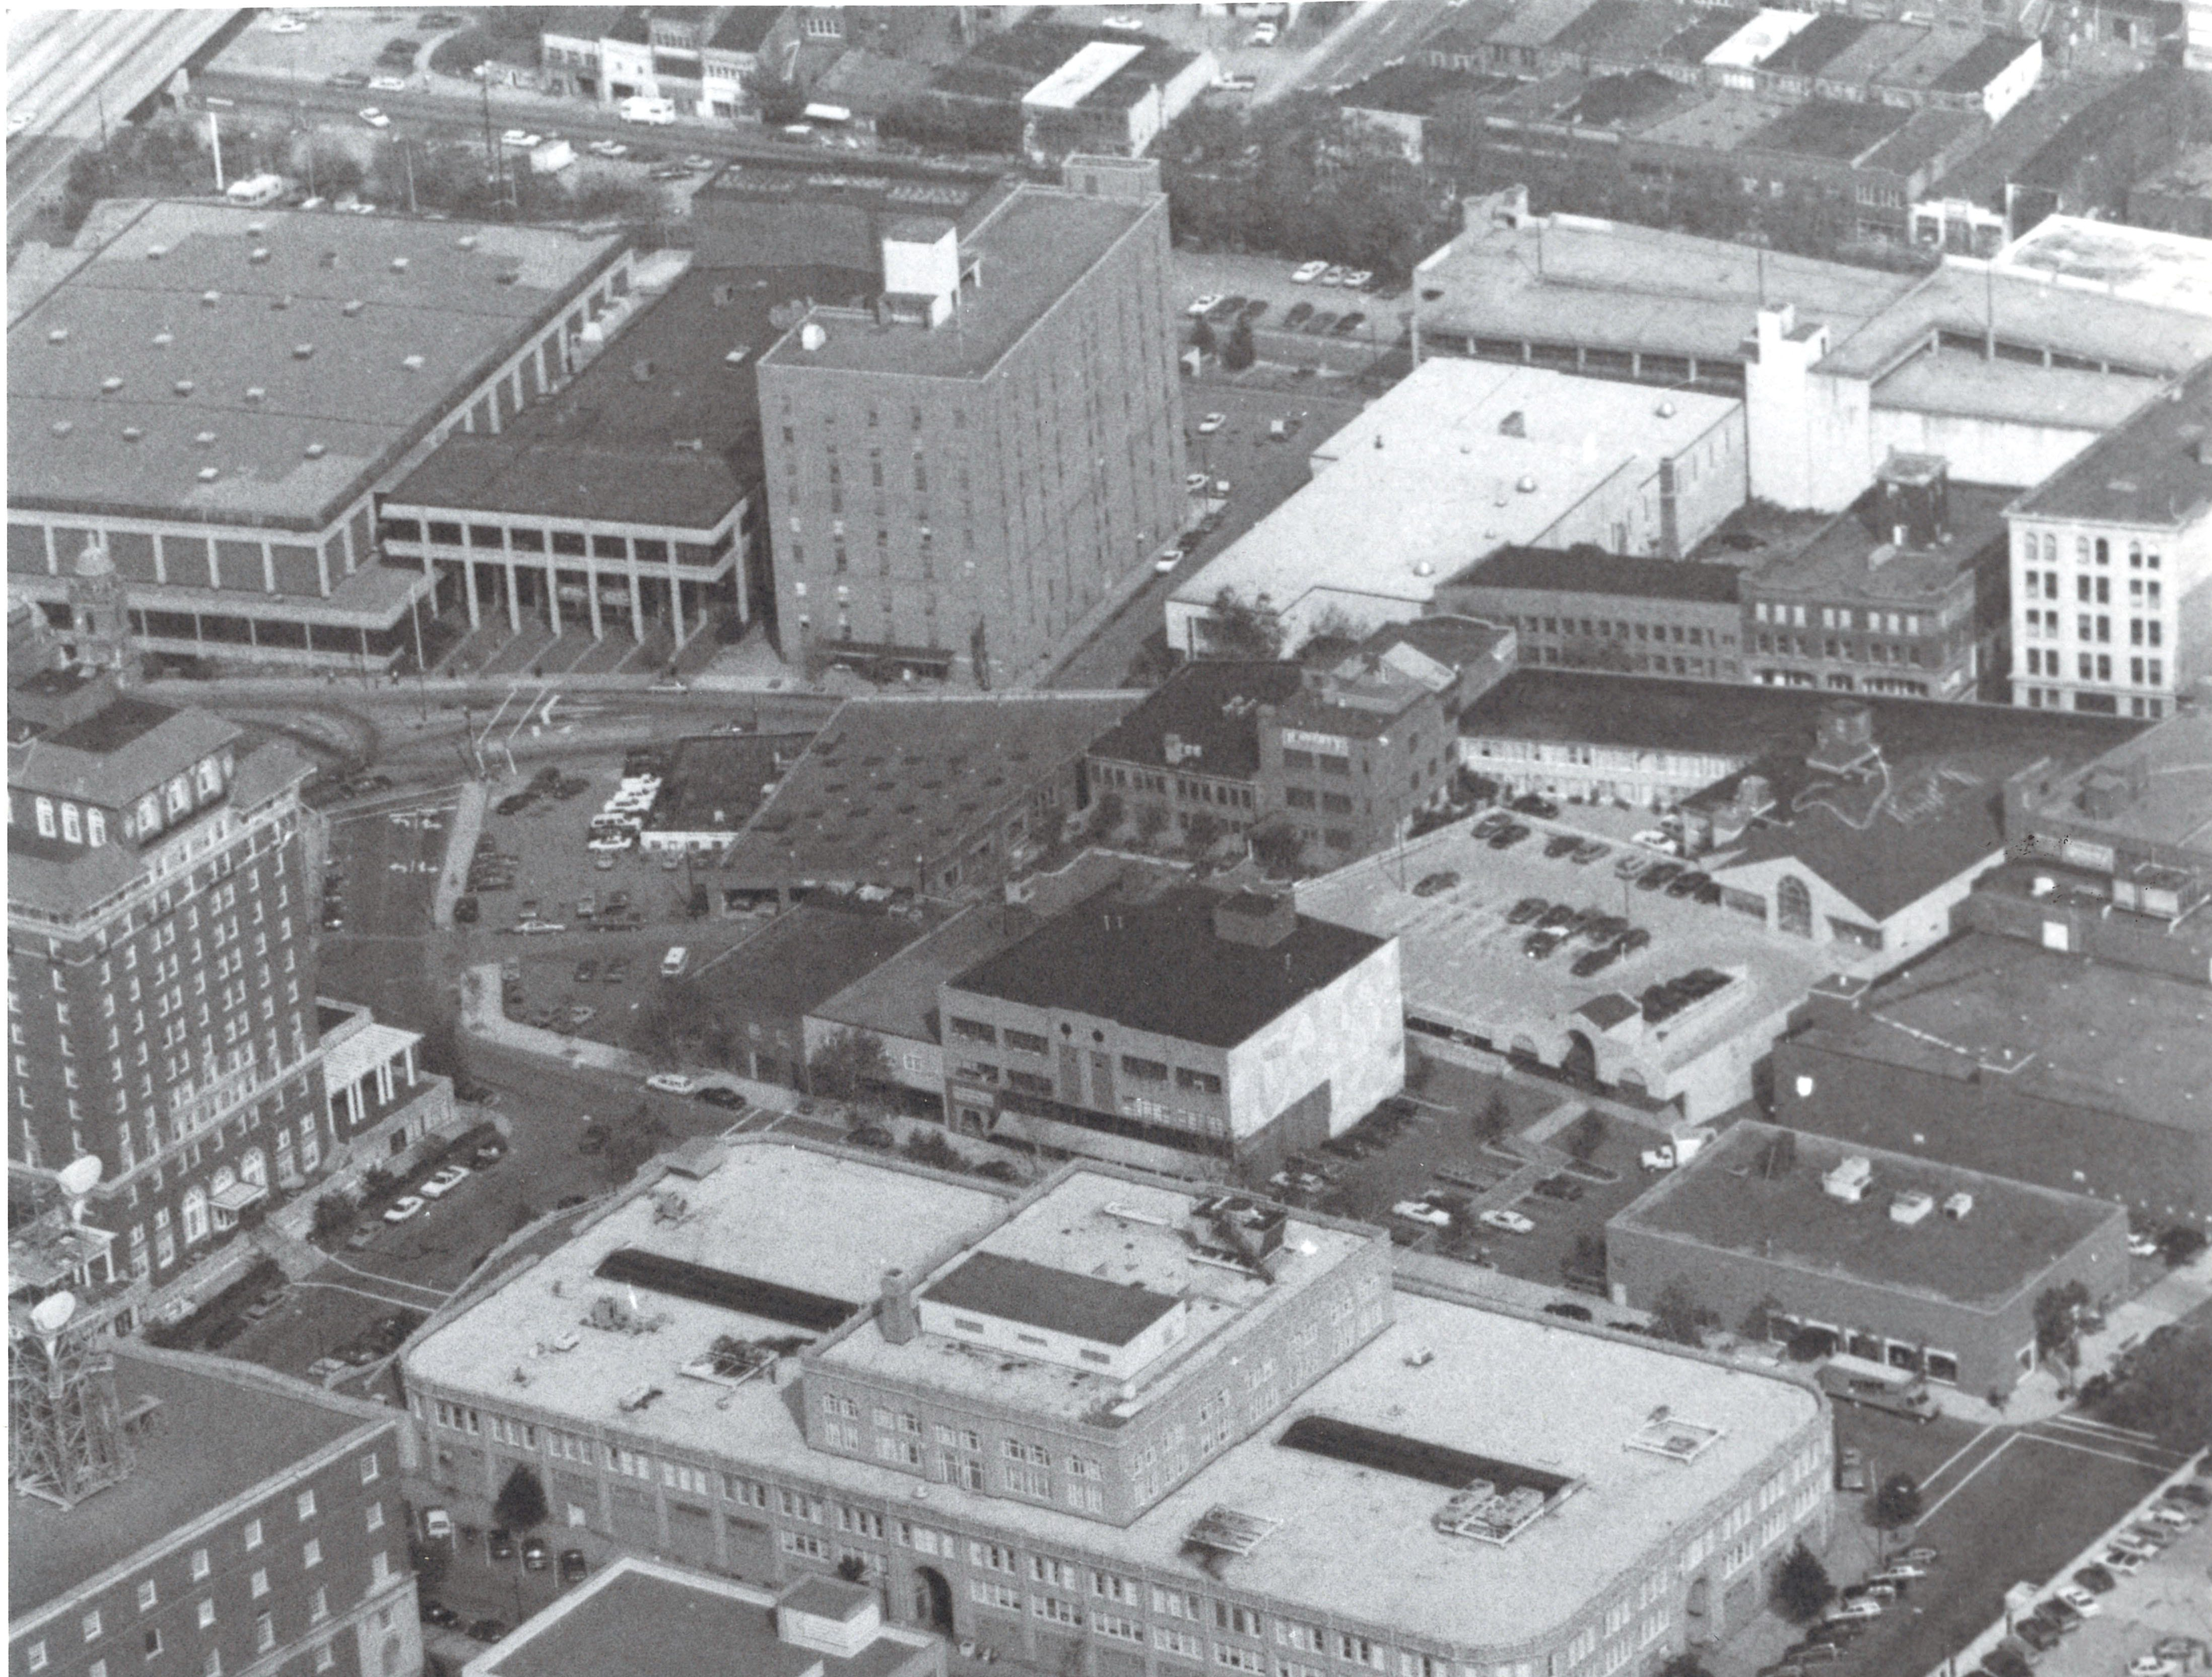 An aerial shot of the Grove Arcade building, center, in 1991, looking toward the east.